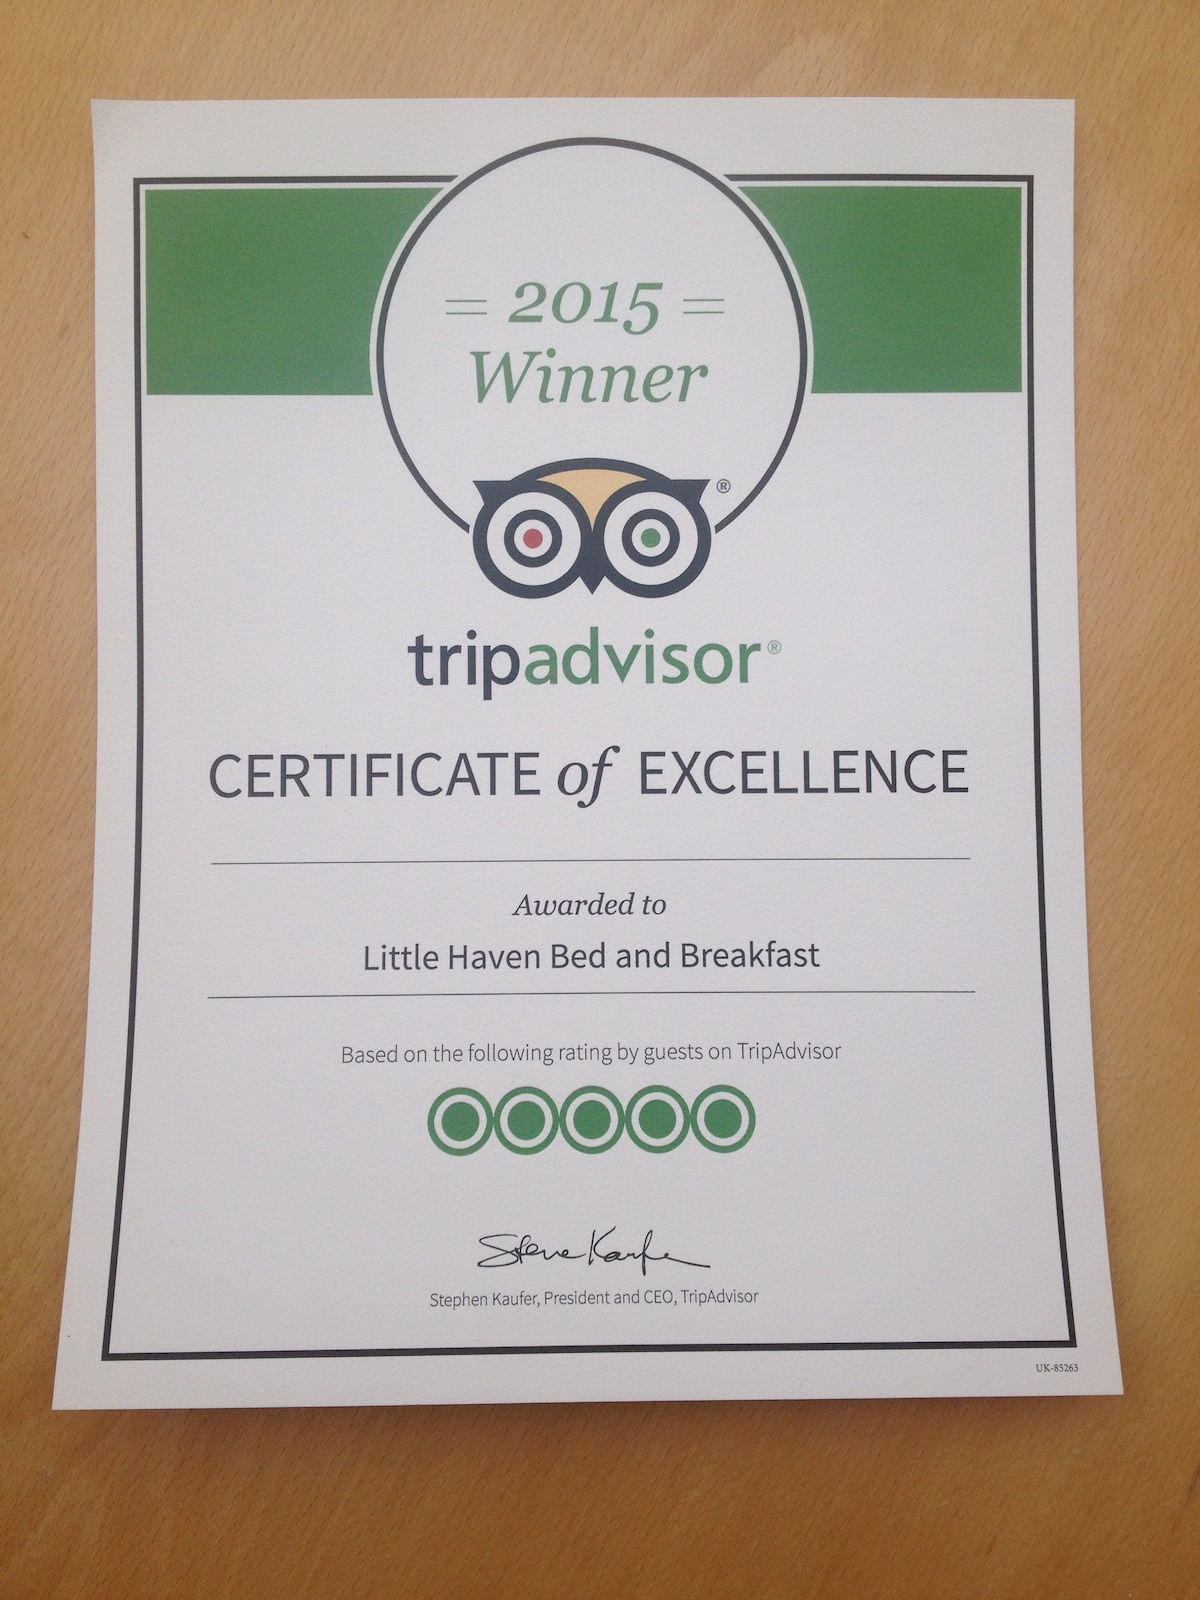 Award winning Bed and Breakfast